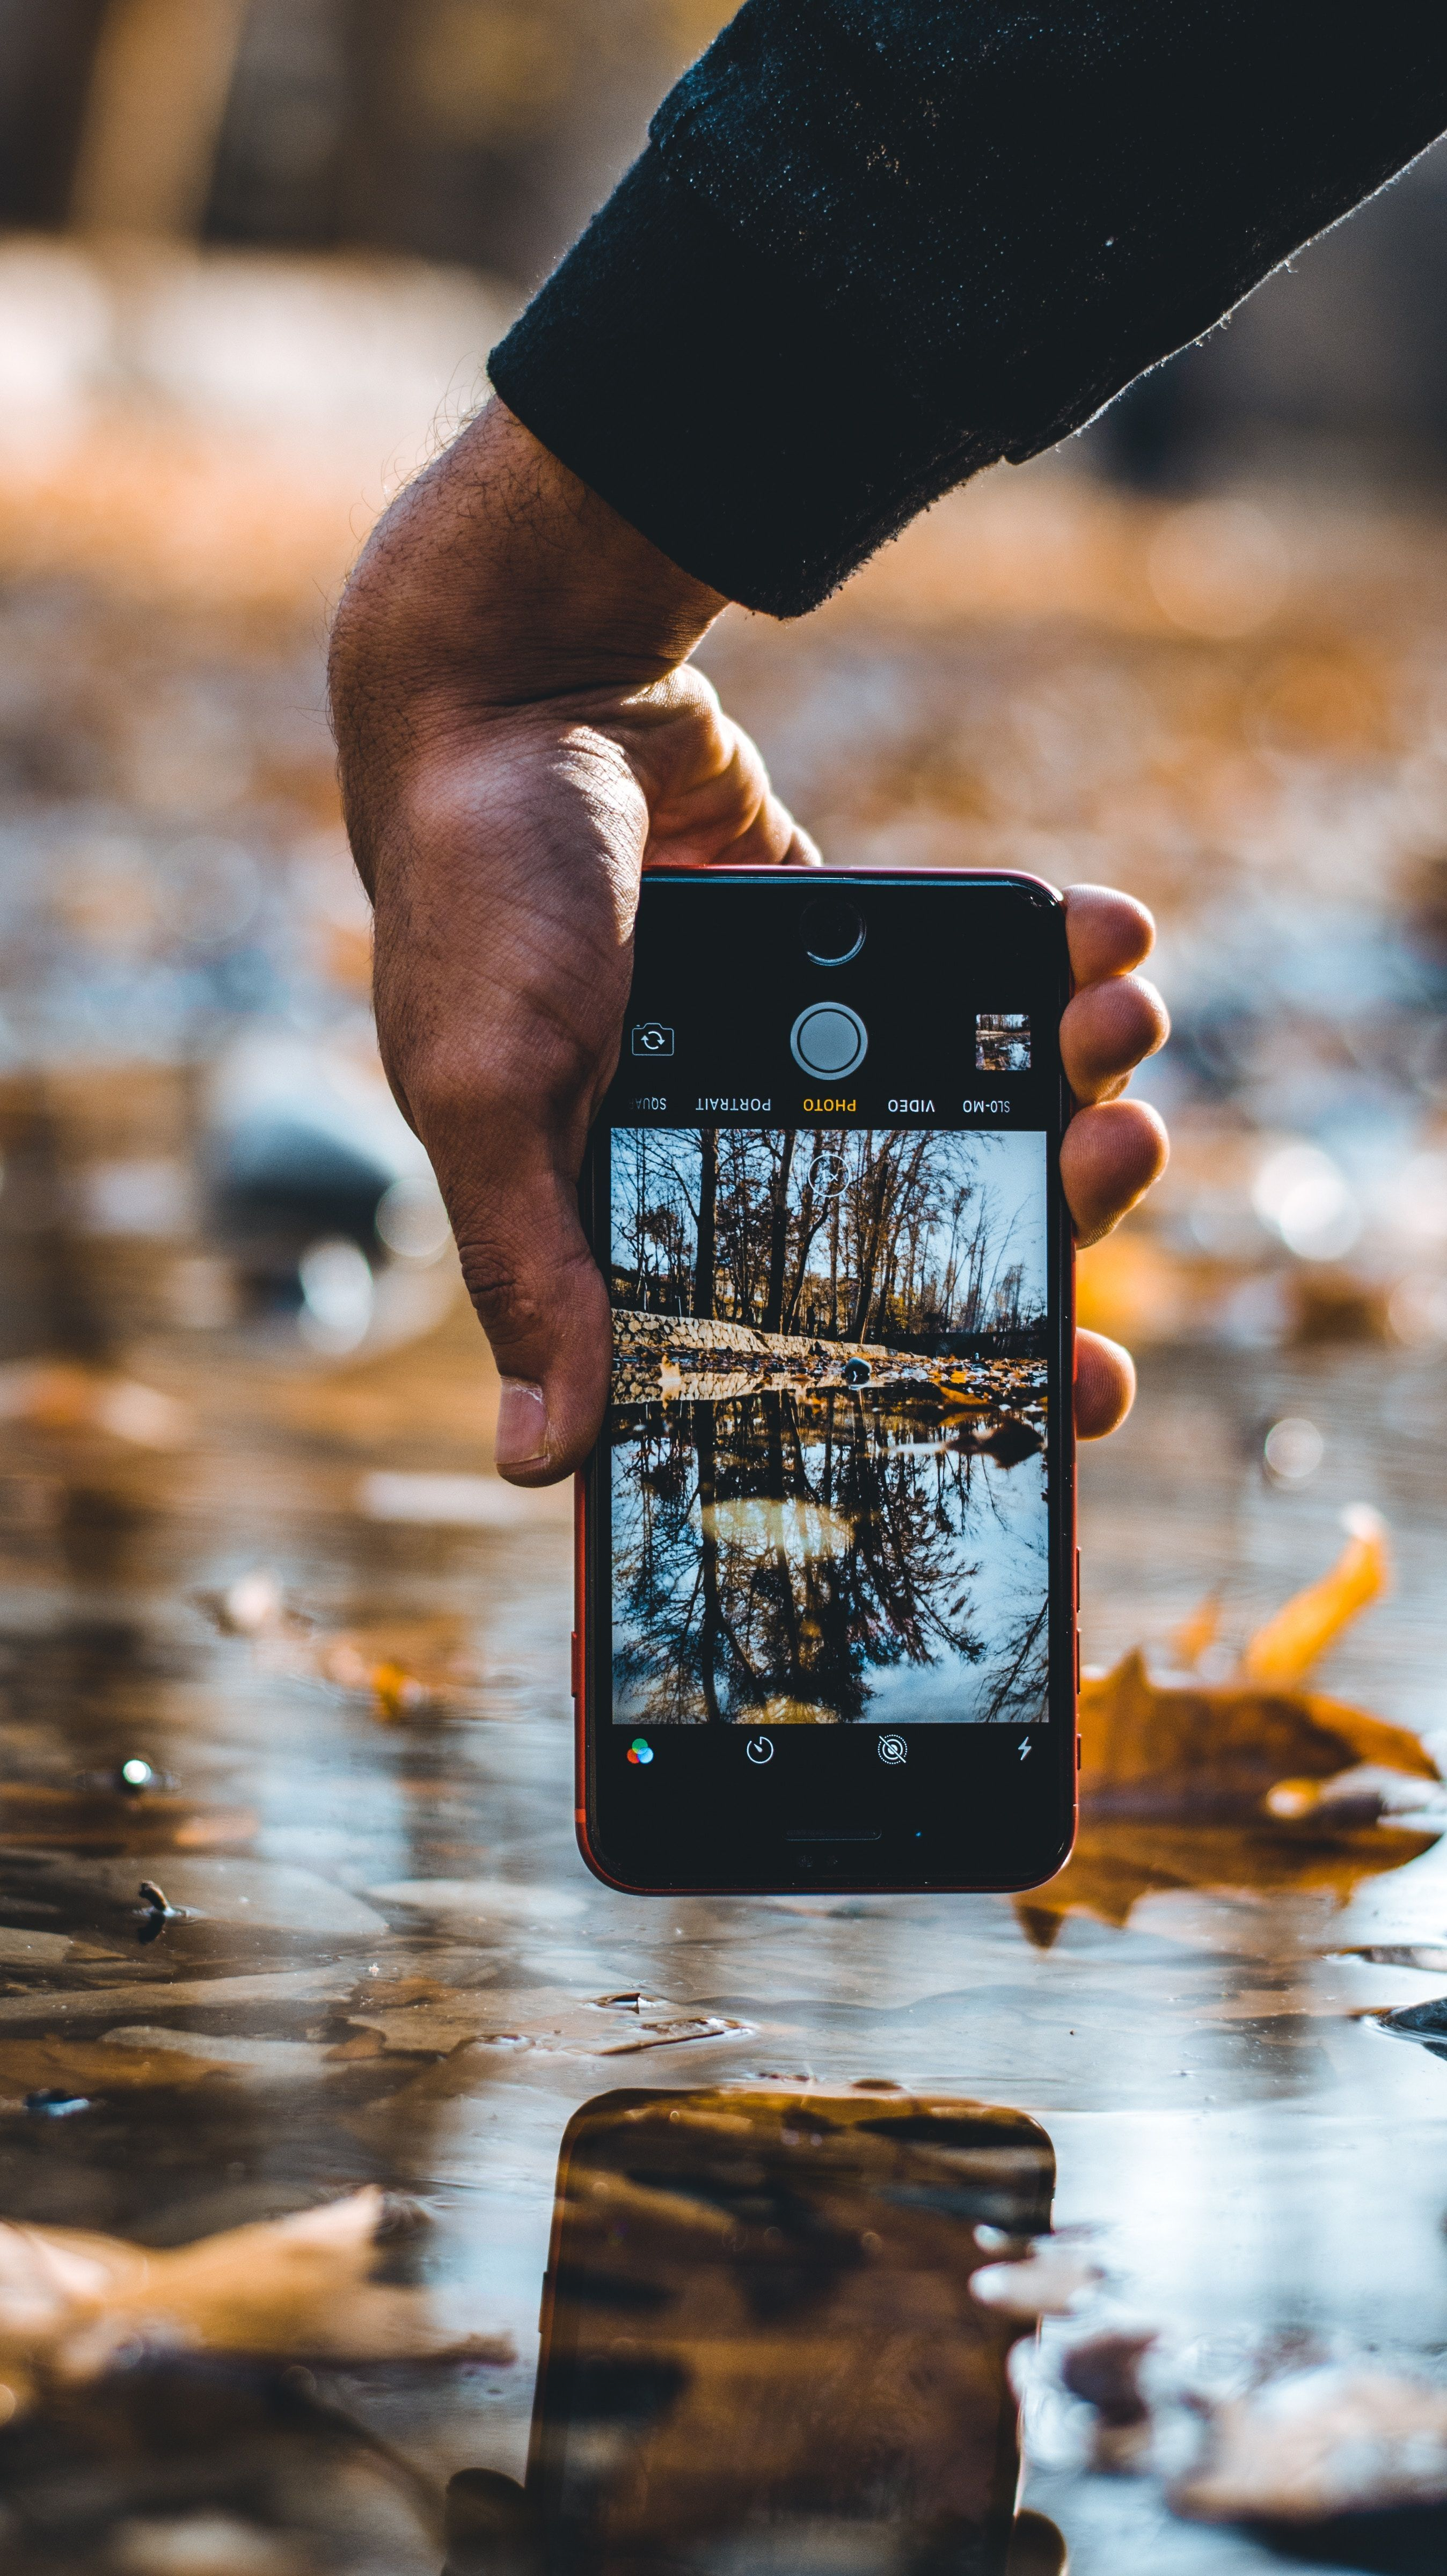 10 Savvy Ways To Improve Mobile Photography